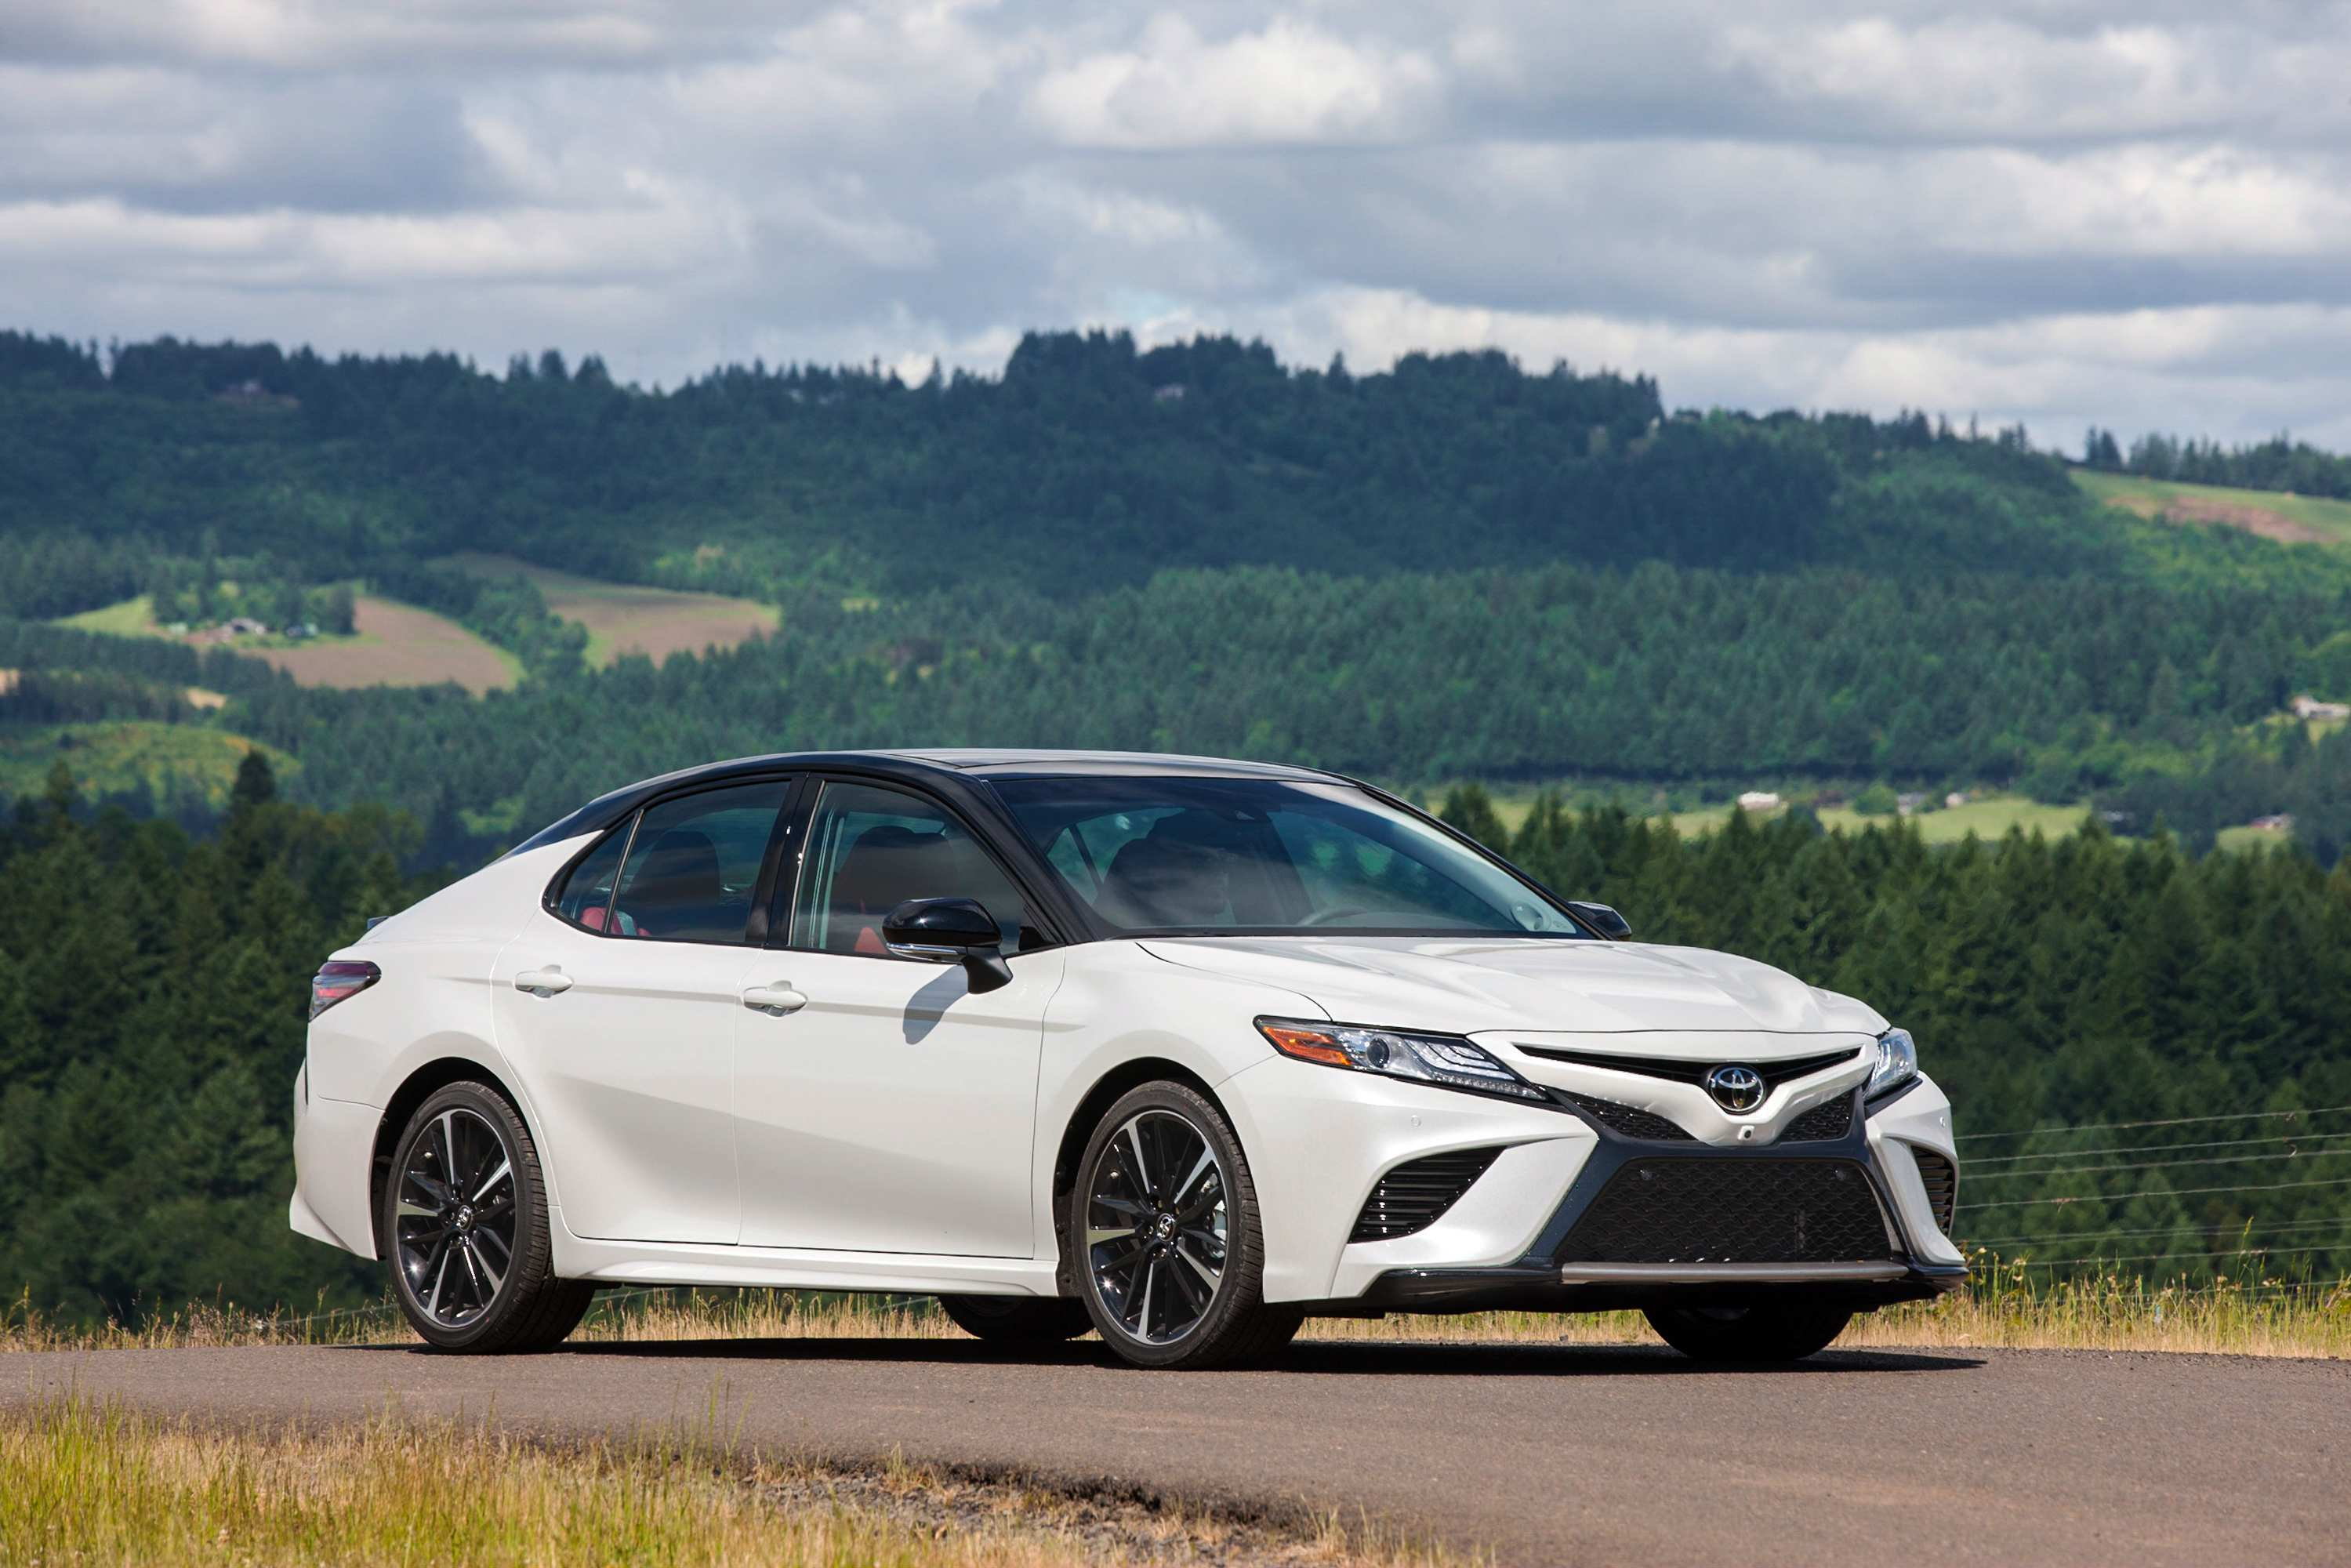 94 New 2019 Toyota Camry Release Date And Concept